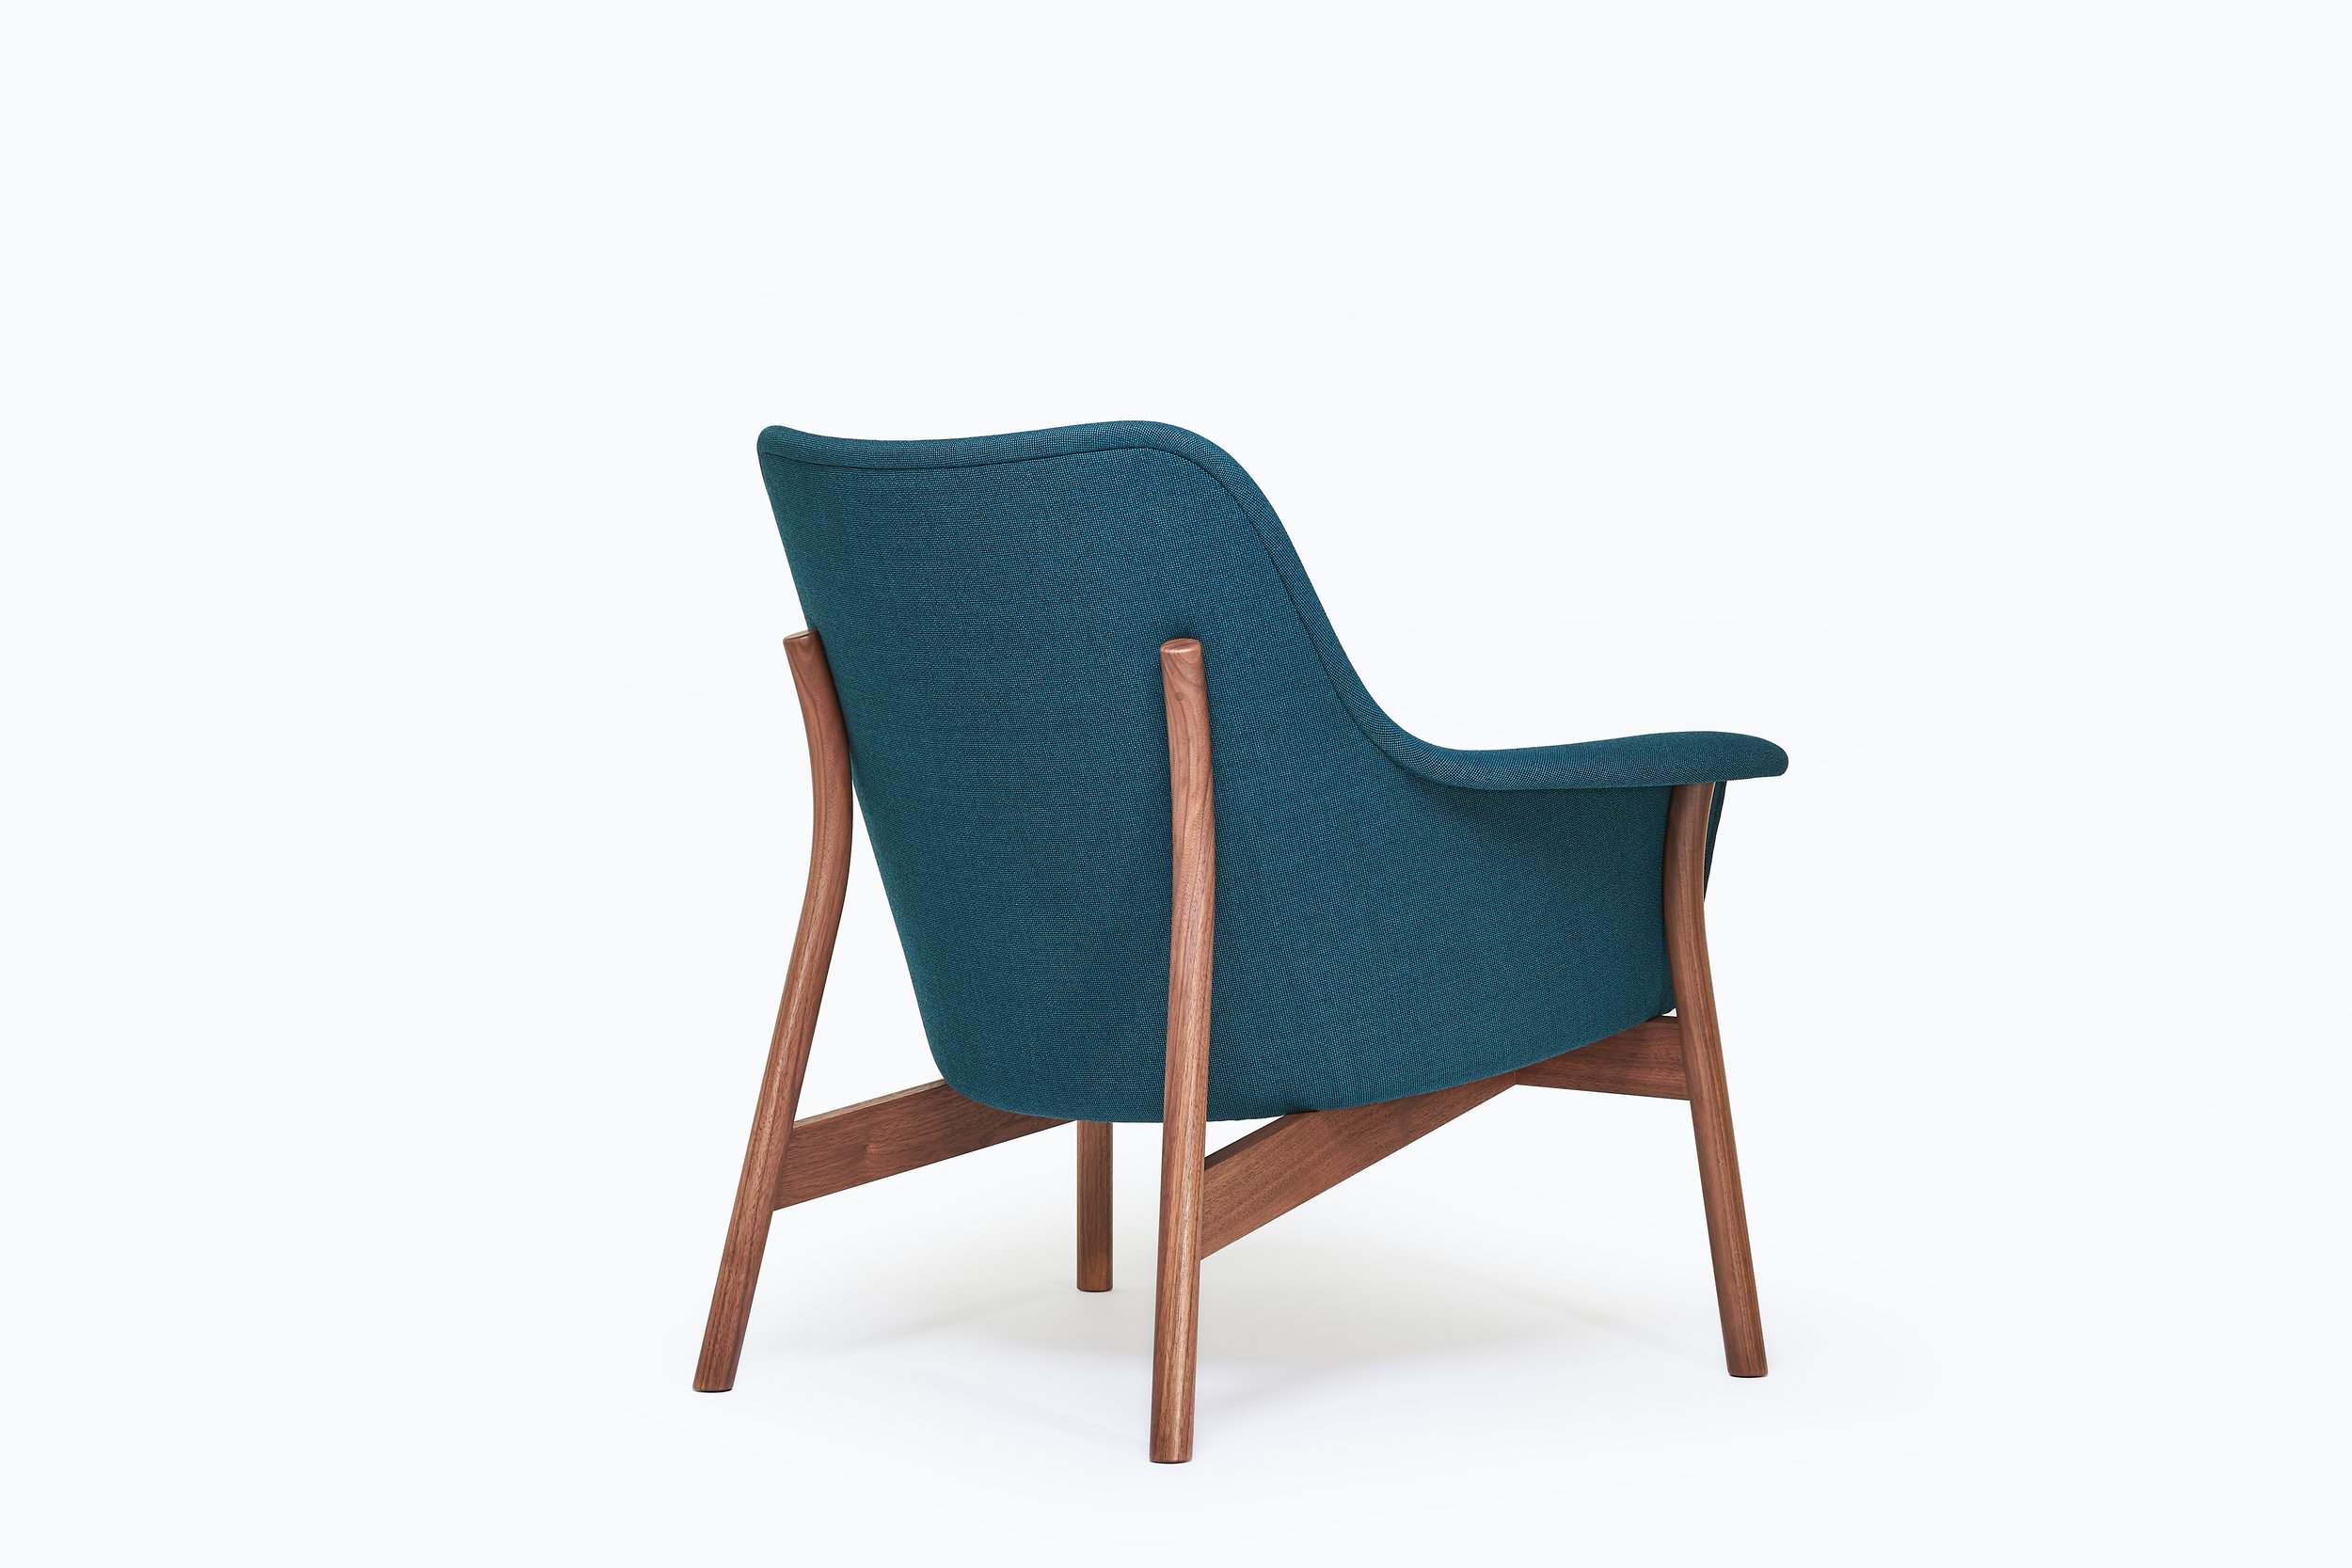 back view of award winning oxbow lounge chair by furniture maker Namon Gaston